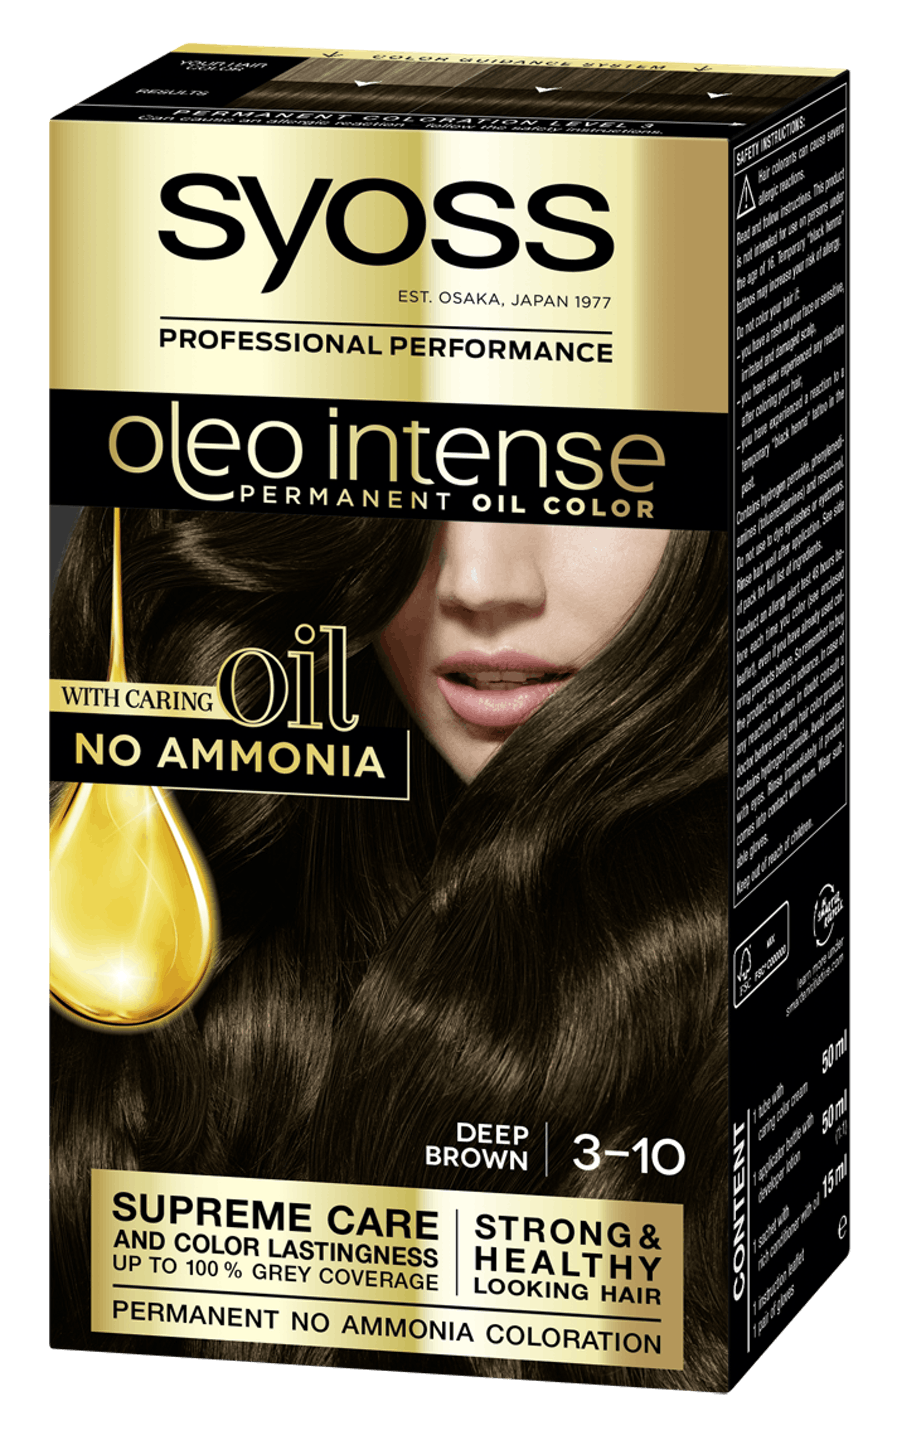 Syoss Oleo Intense Permanent Oil Color 3-10 Deep Brown